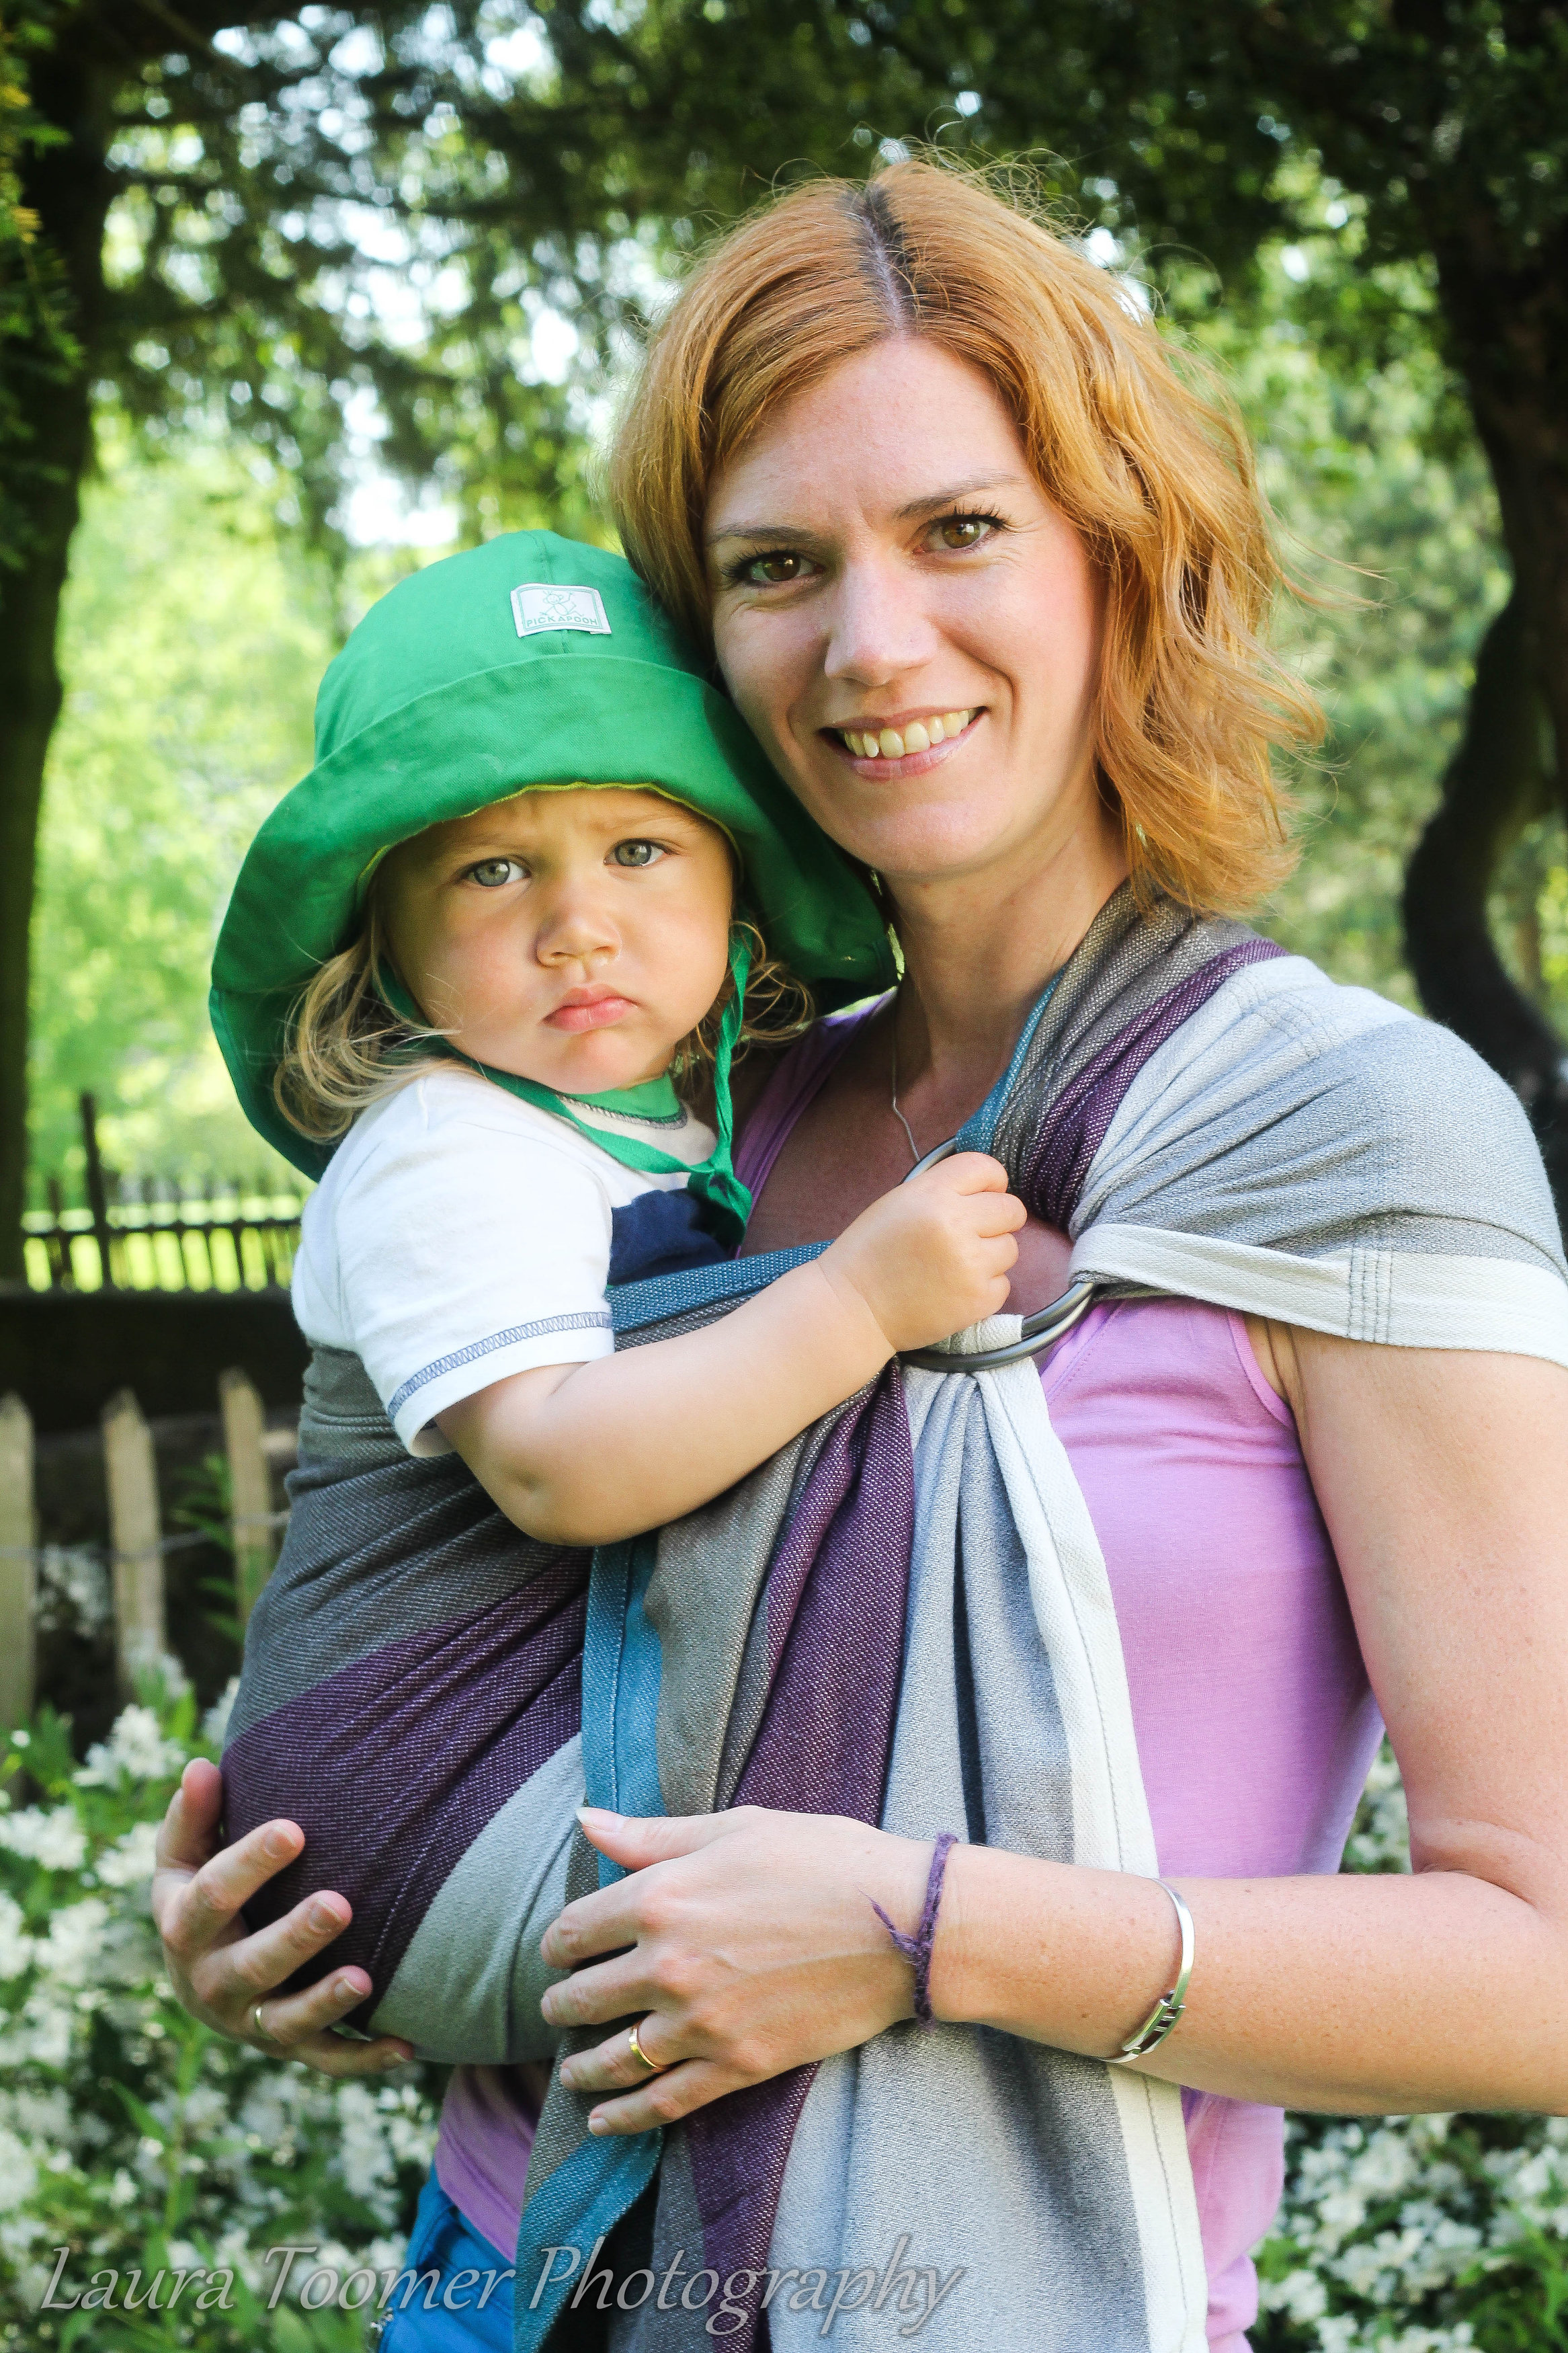 a8aeaae2515 Our other asymmetric sling is the Scootababy. This is a hip carrier  designed to offer a comfortable hip carry position for babies who like to  sit on your ...